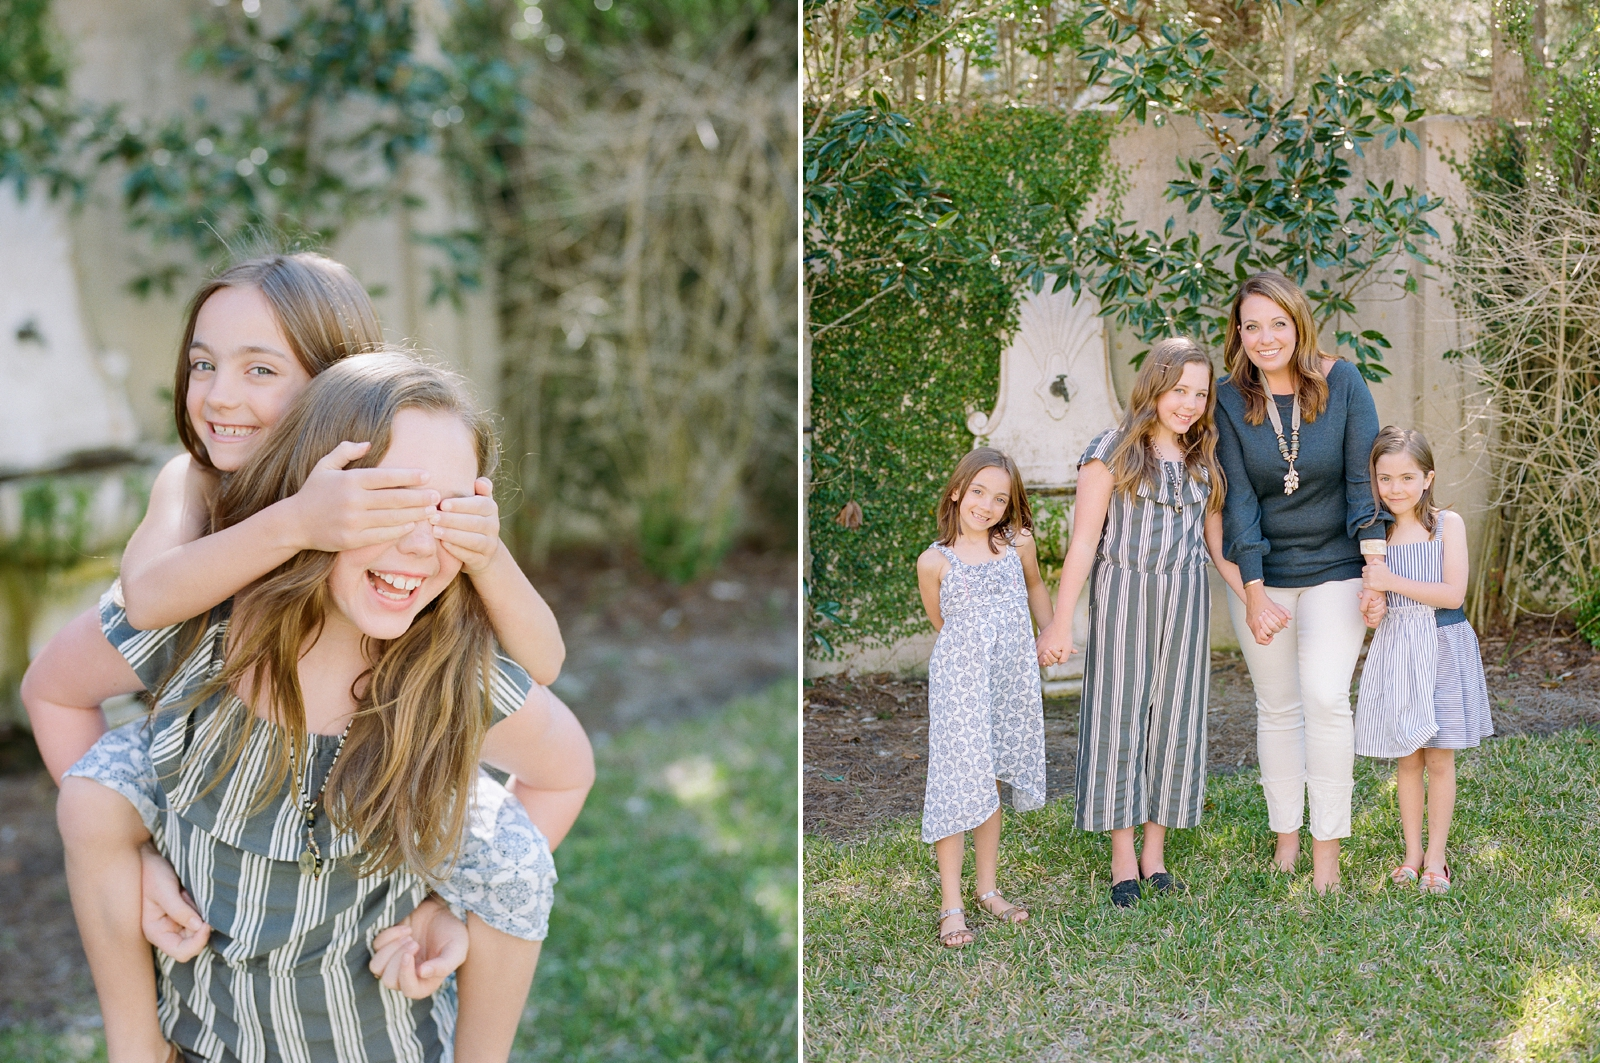 sea_island_family_photographer_sea_island_georgia_ogilvie_shannon_griffin_0006.jpg